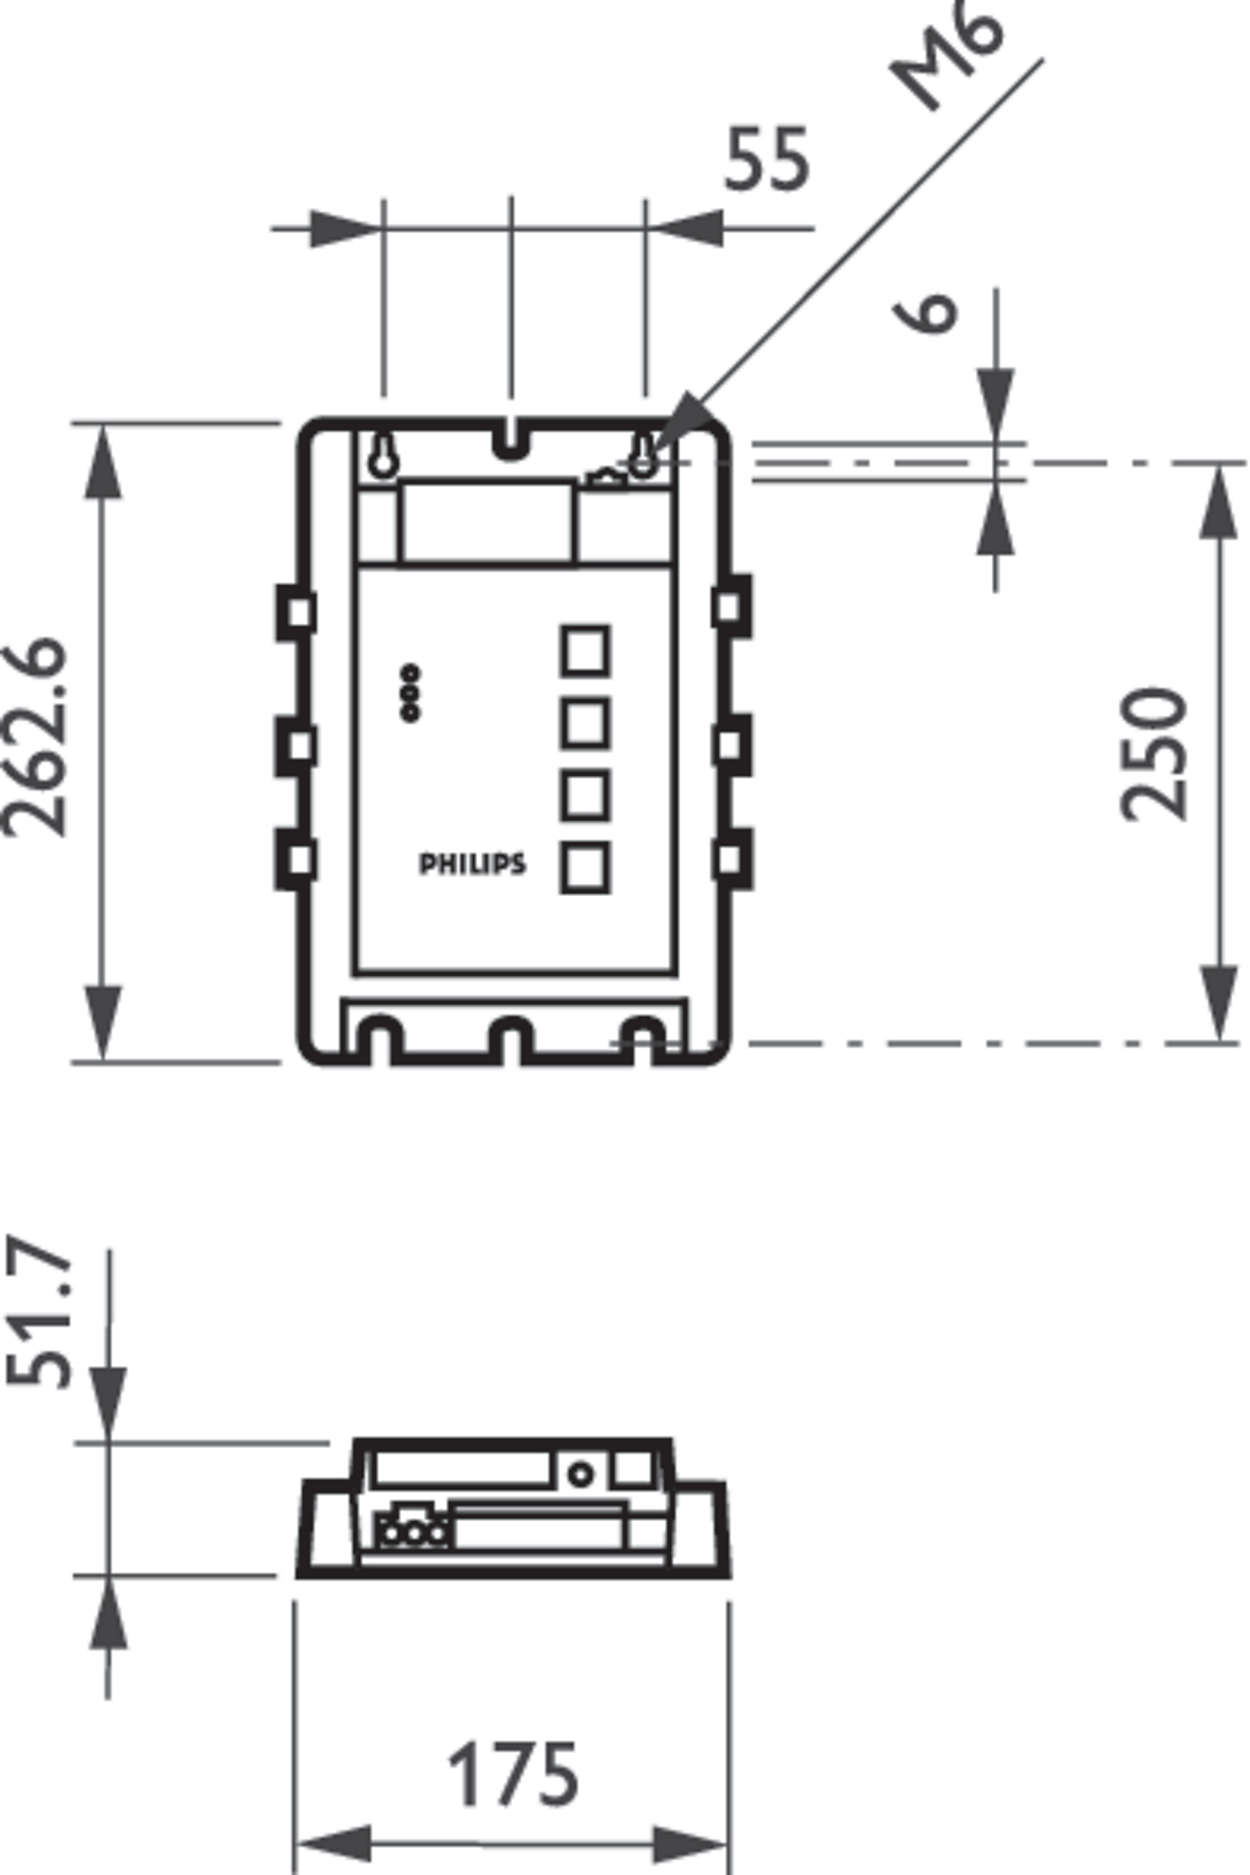 Lrc5934 10 Contr 9x4 Plug 4 Dig Lightmaster Lon Philips Lighting Download Circuit And Wiring Diagram Schematic For Product Description